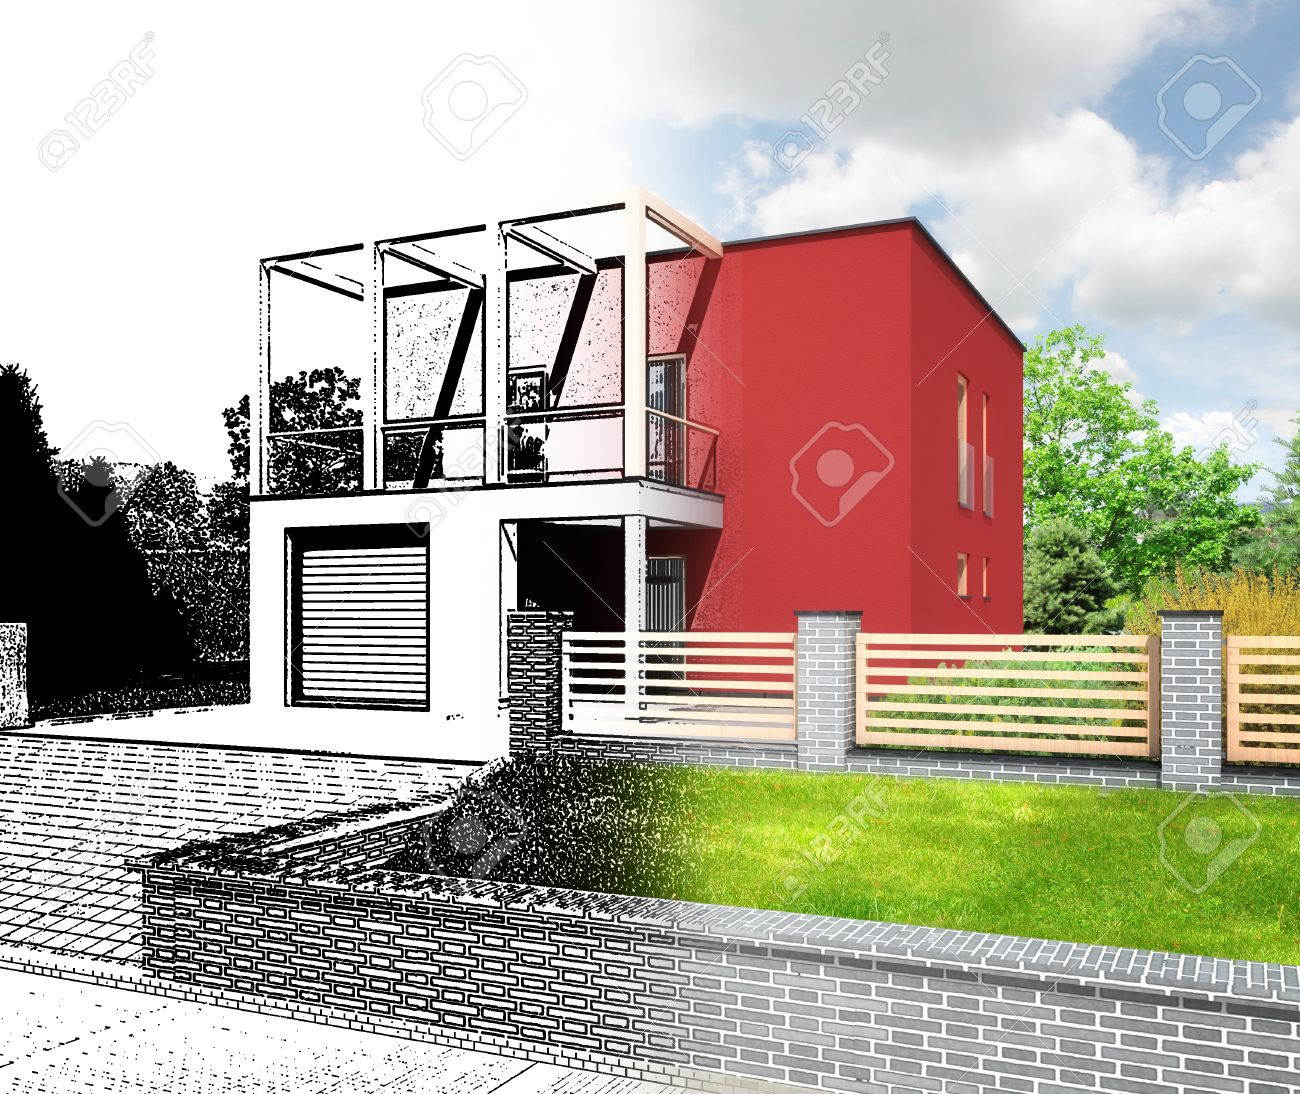 Architectural Visualization Of A New Modern House Combination Sketch And Rendering Showing The Design